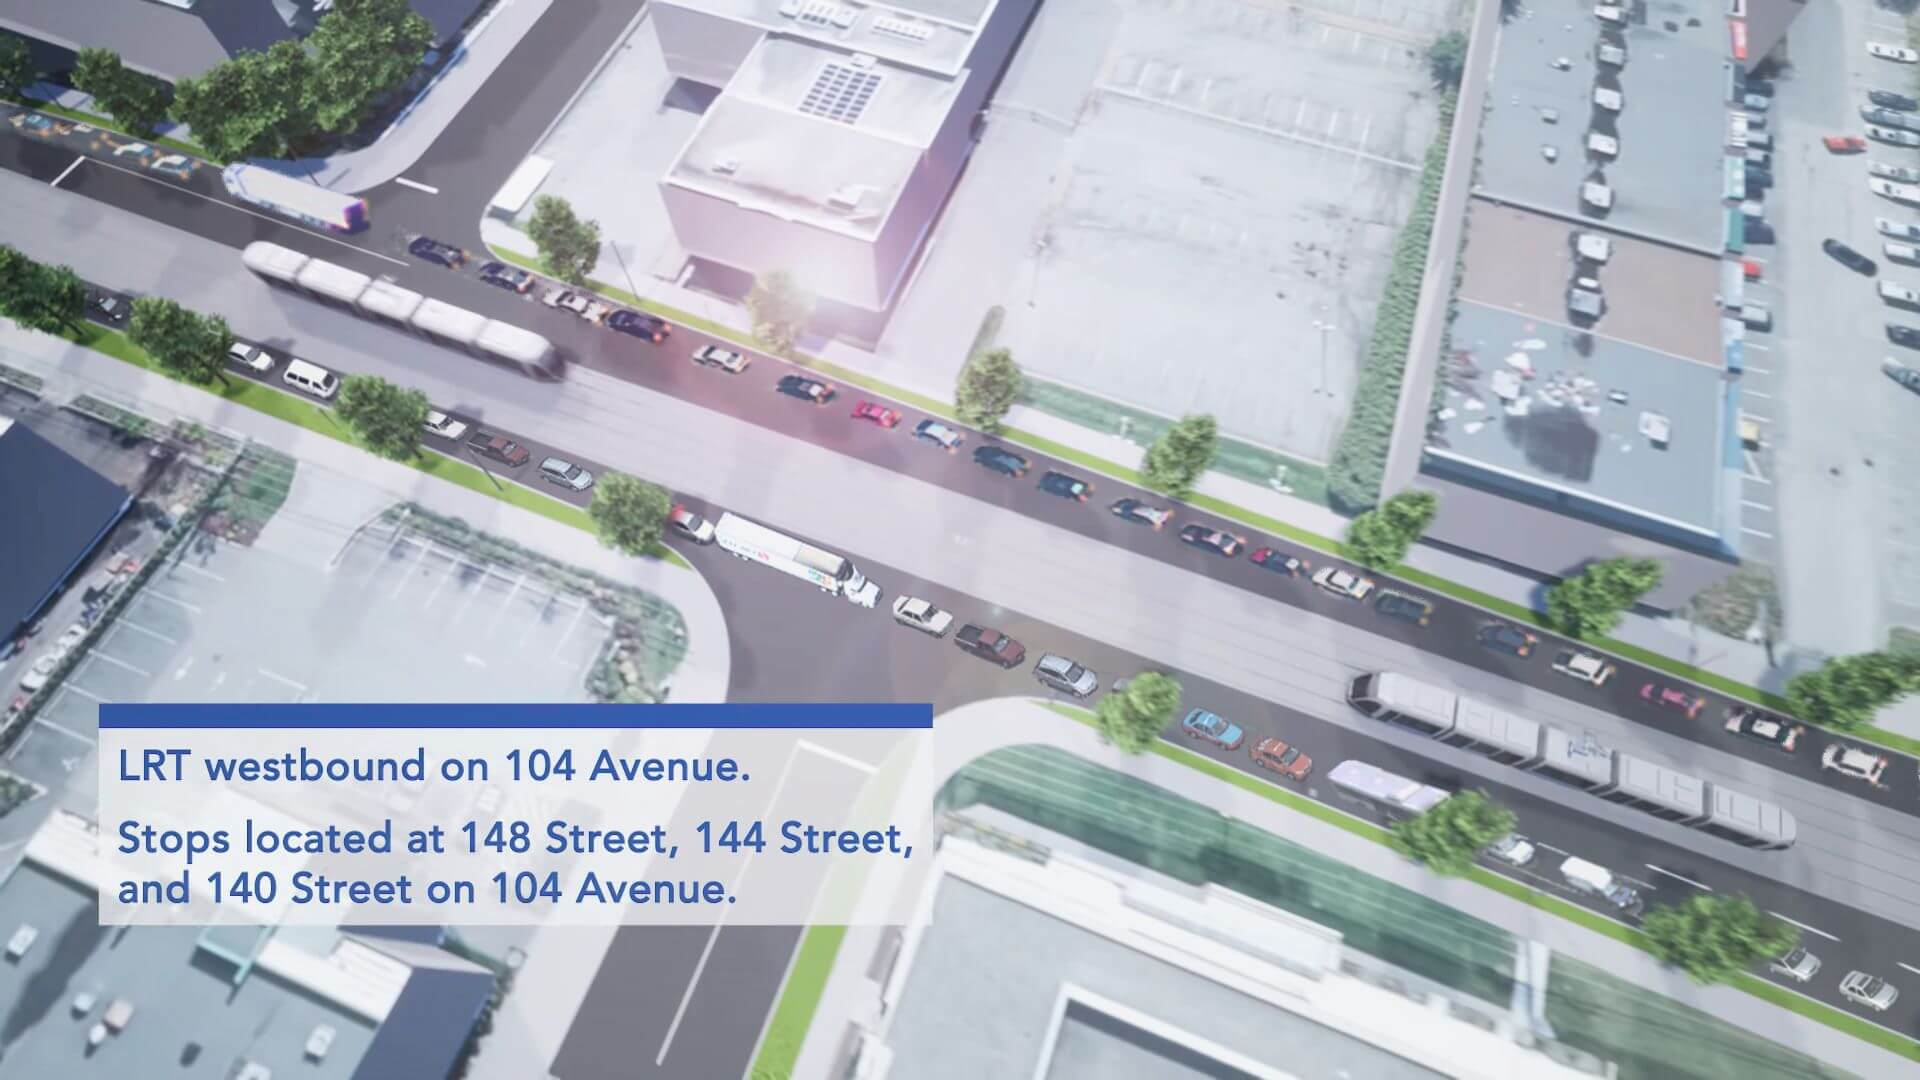 Surrey LRT rendering photoshops out traffic congestion